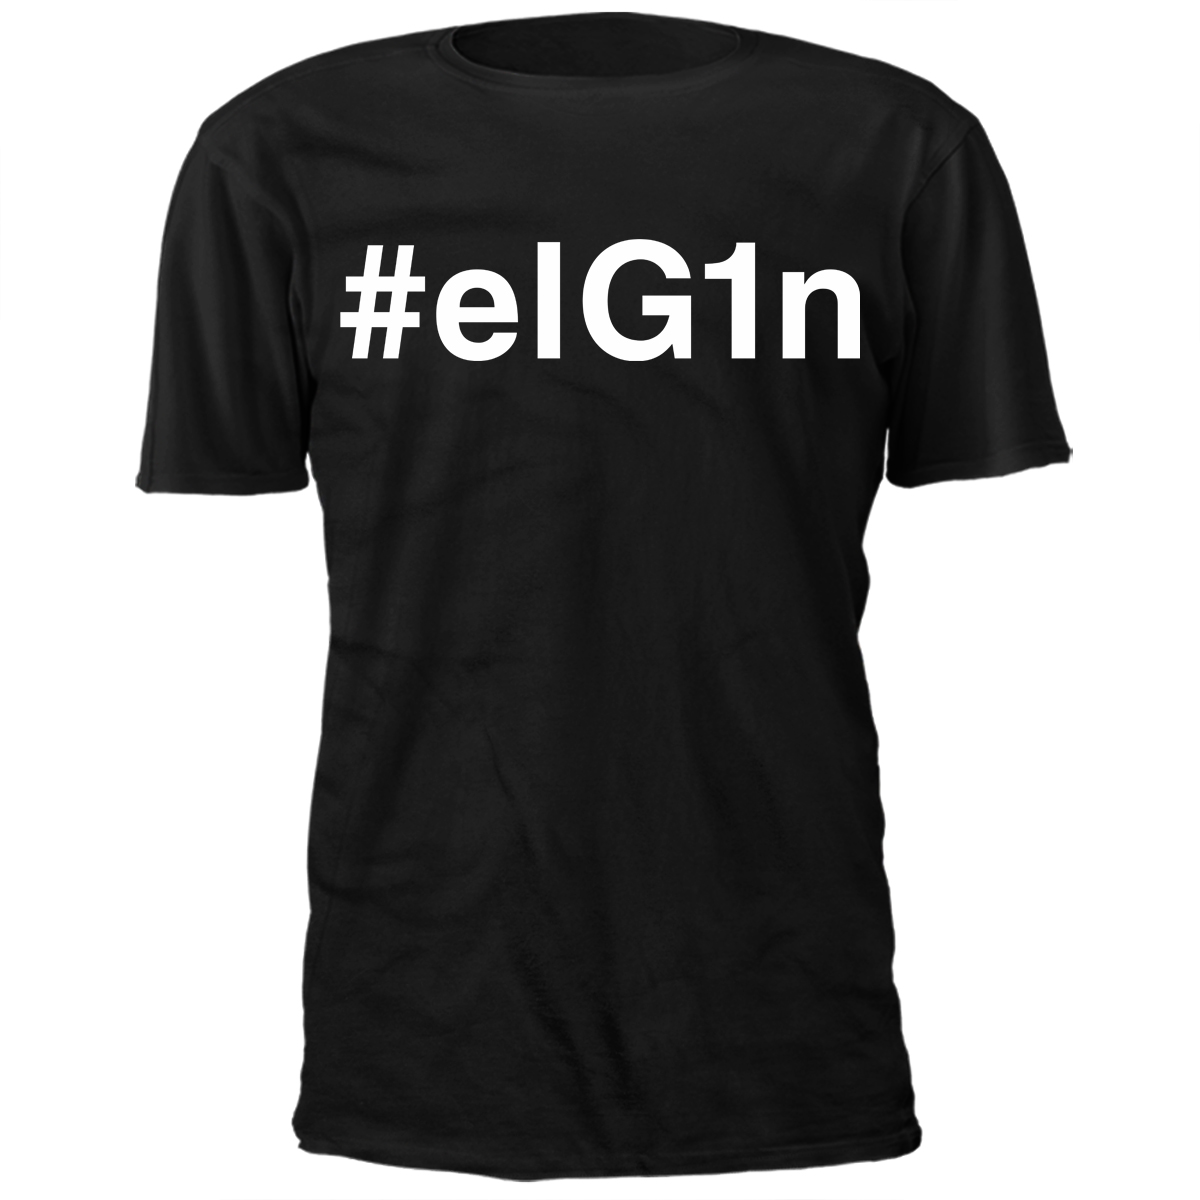 Michael Elgin #elG1n T-shirt